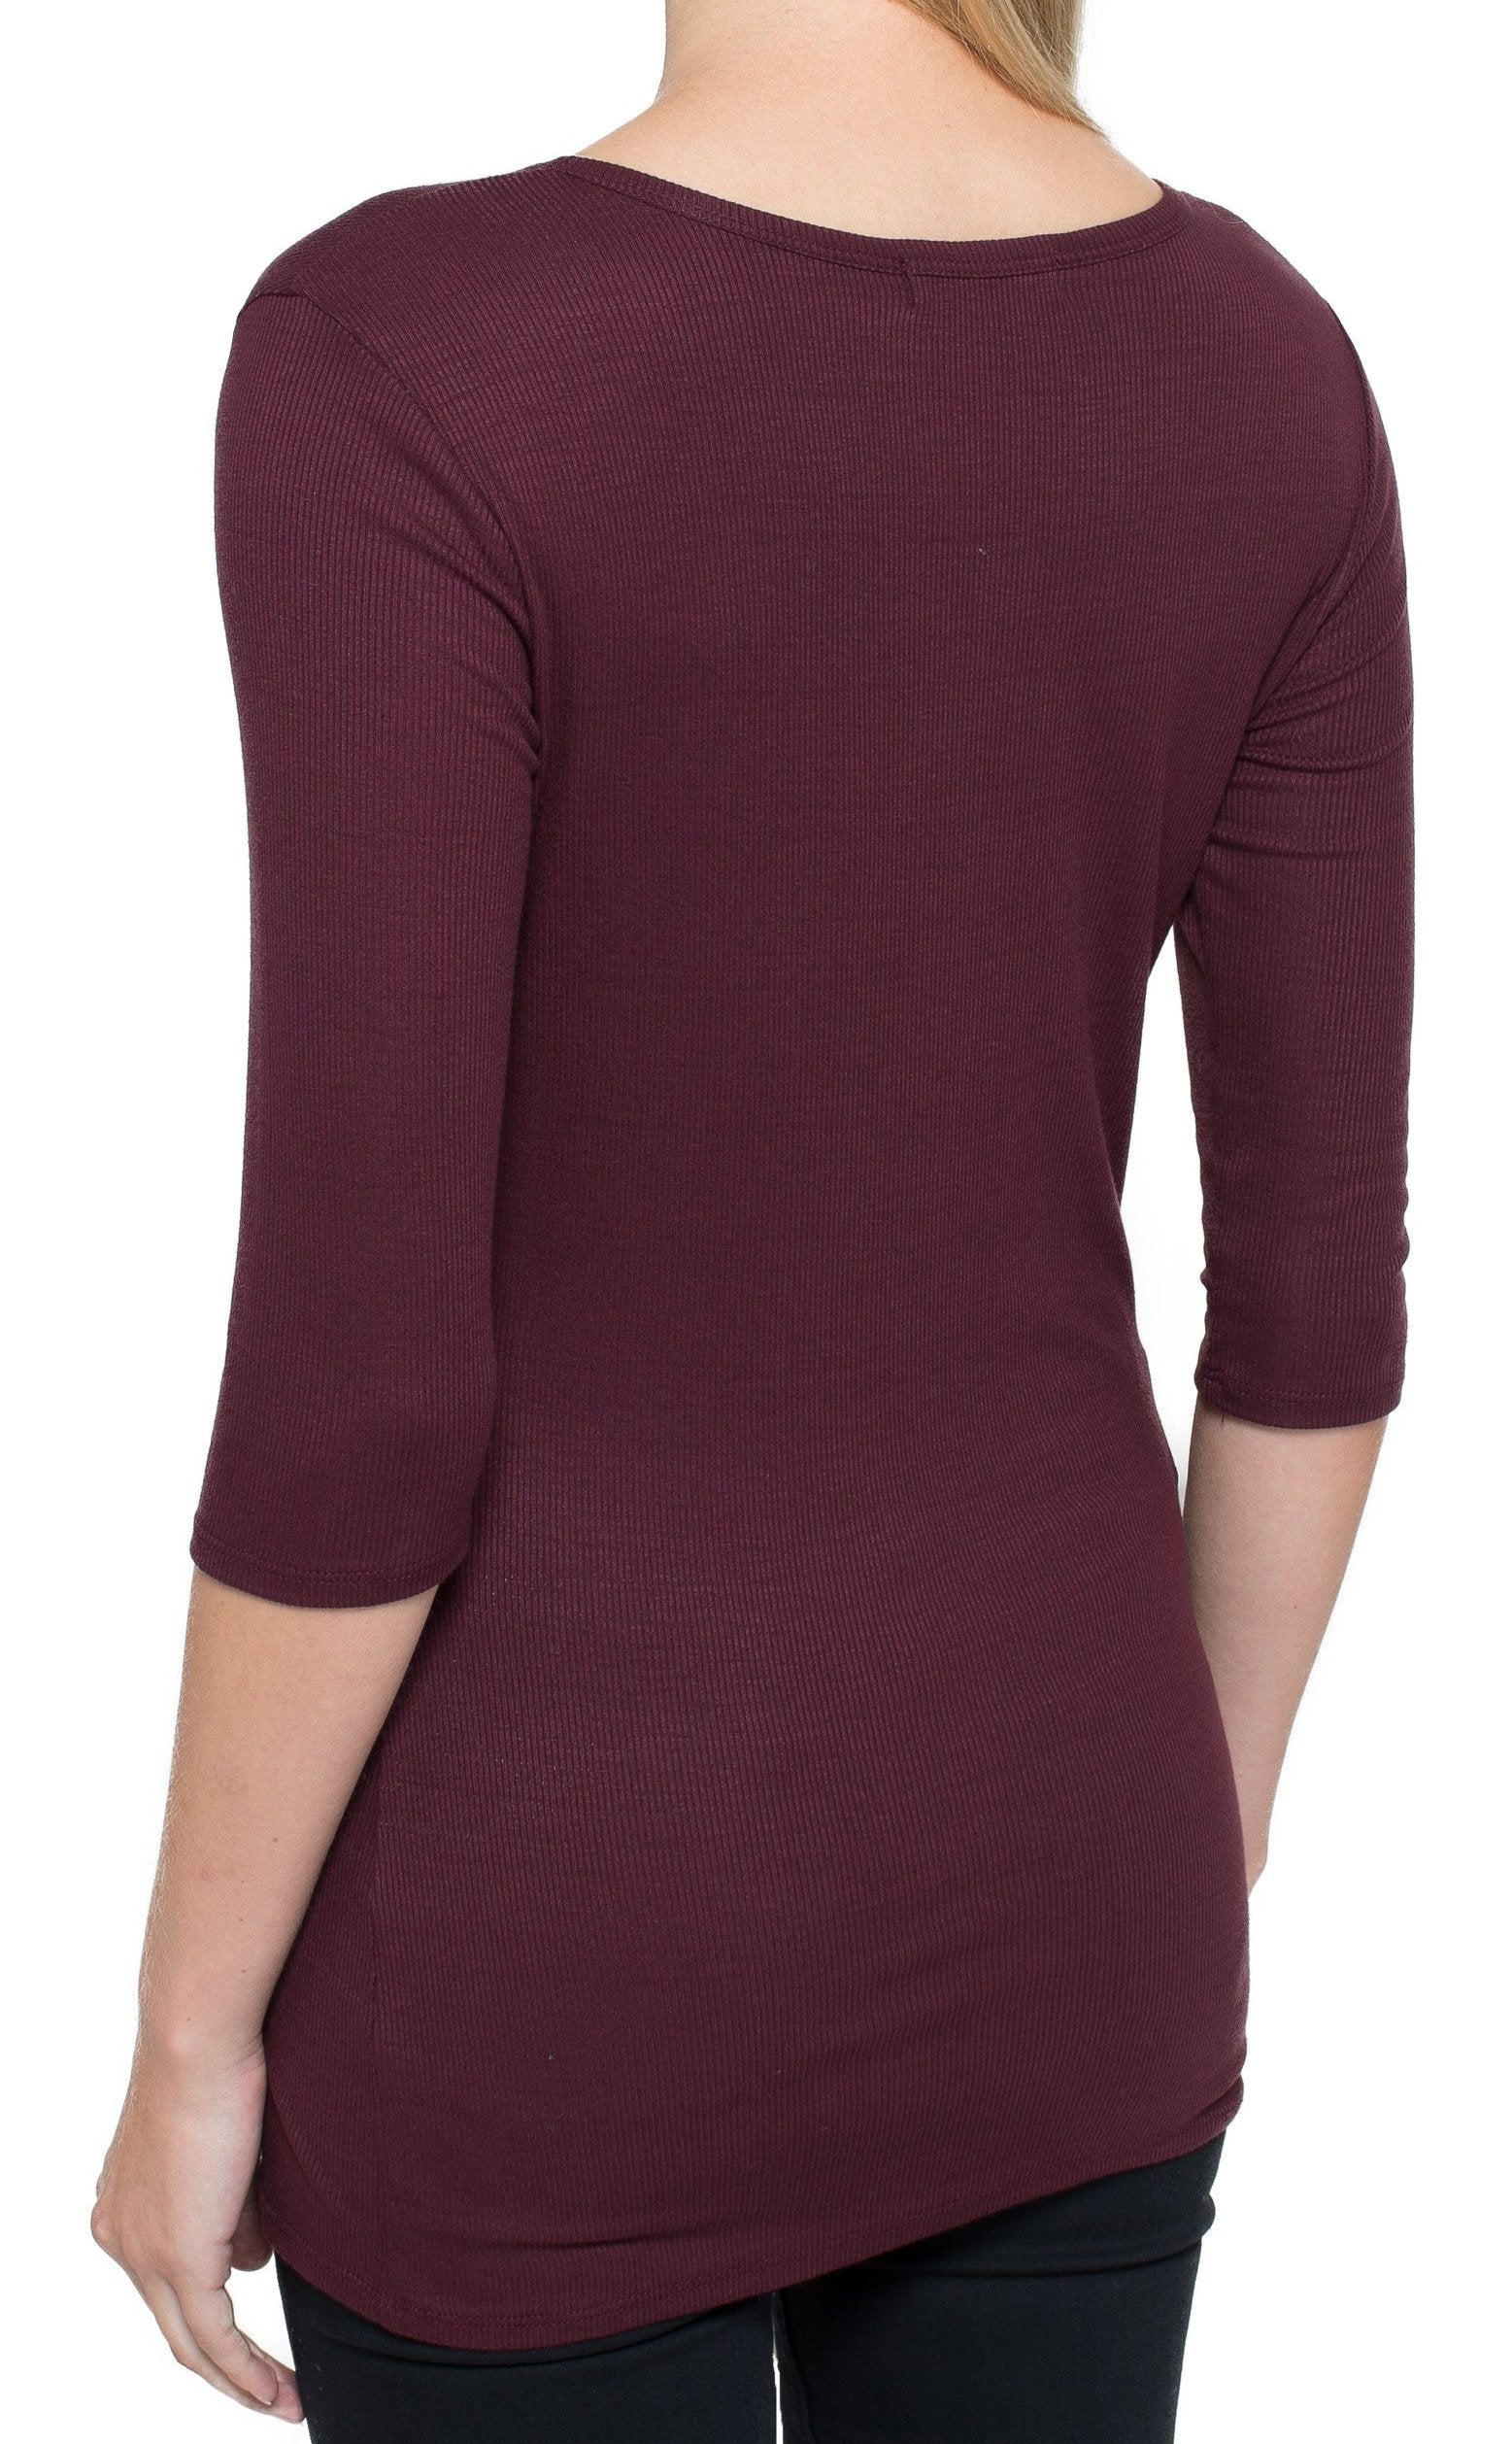 Fitted 1/2 Sleeve Top